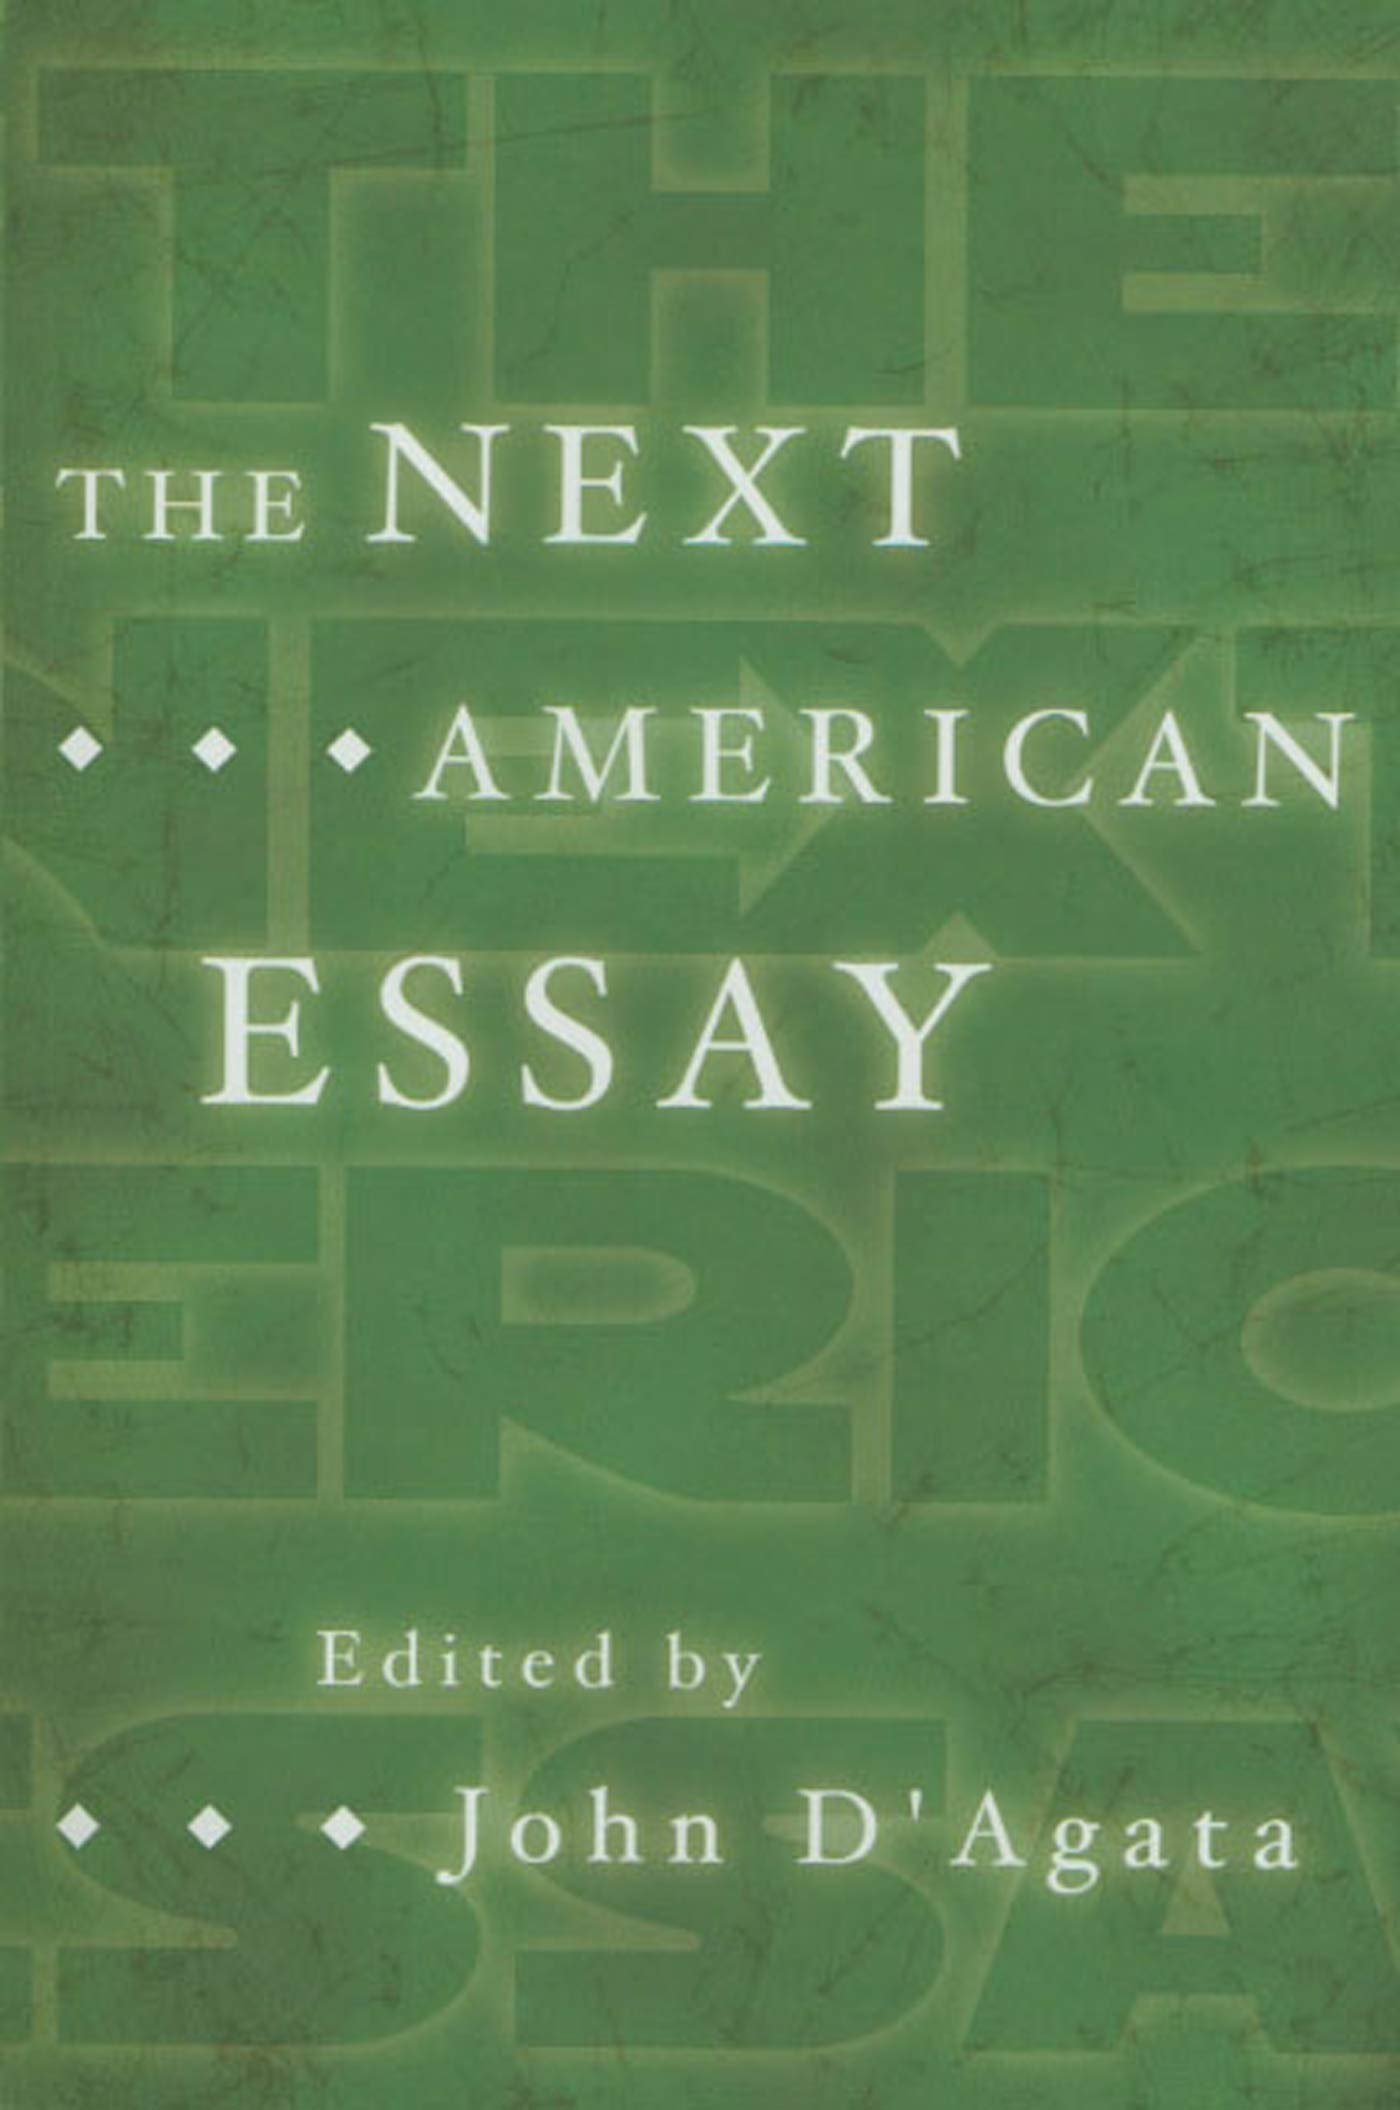 024 61uwmdqvqdl American Essay Striking Dream Scholarship Native Titles Style Full